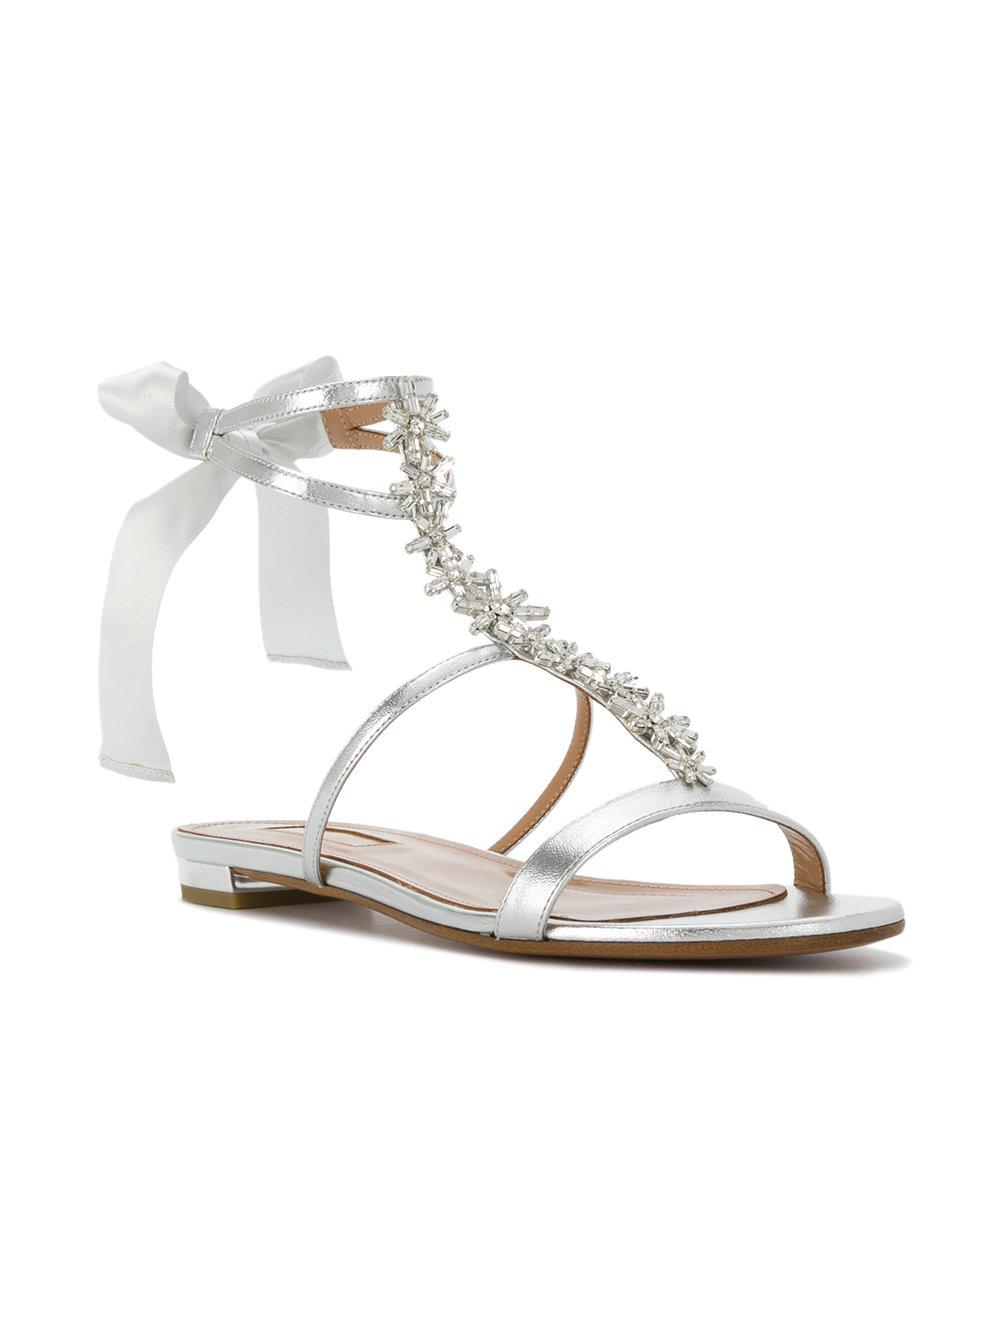 Aquazzura embellished tie back sandals footlocker finishline cheap price buy online with paypal many kinds of cheap online sale pay with paypal F28LaTapq